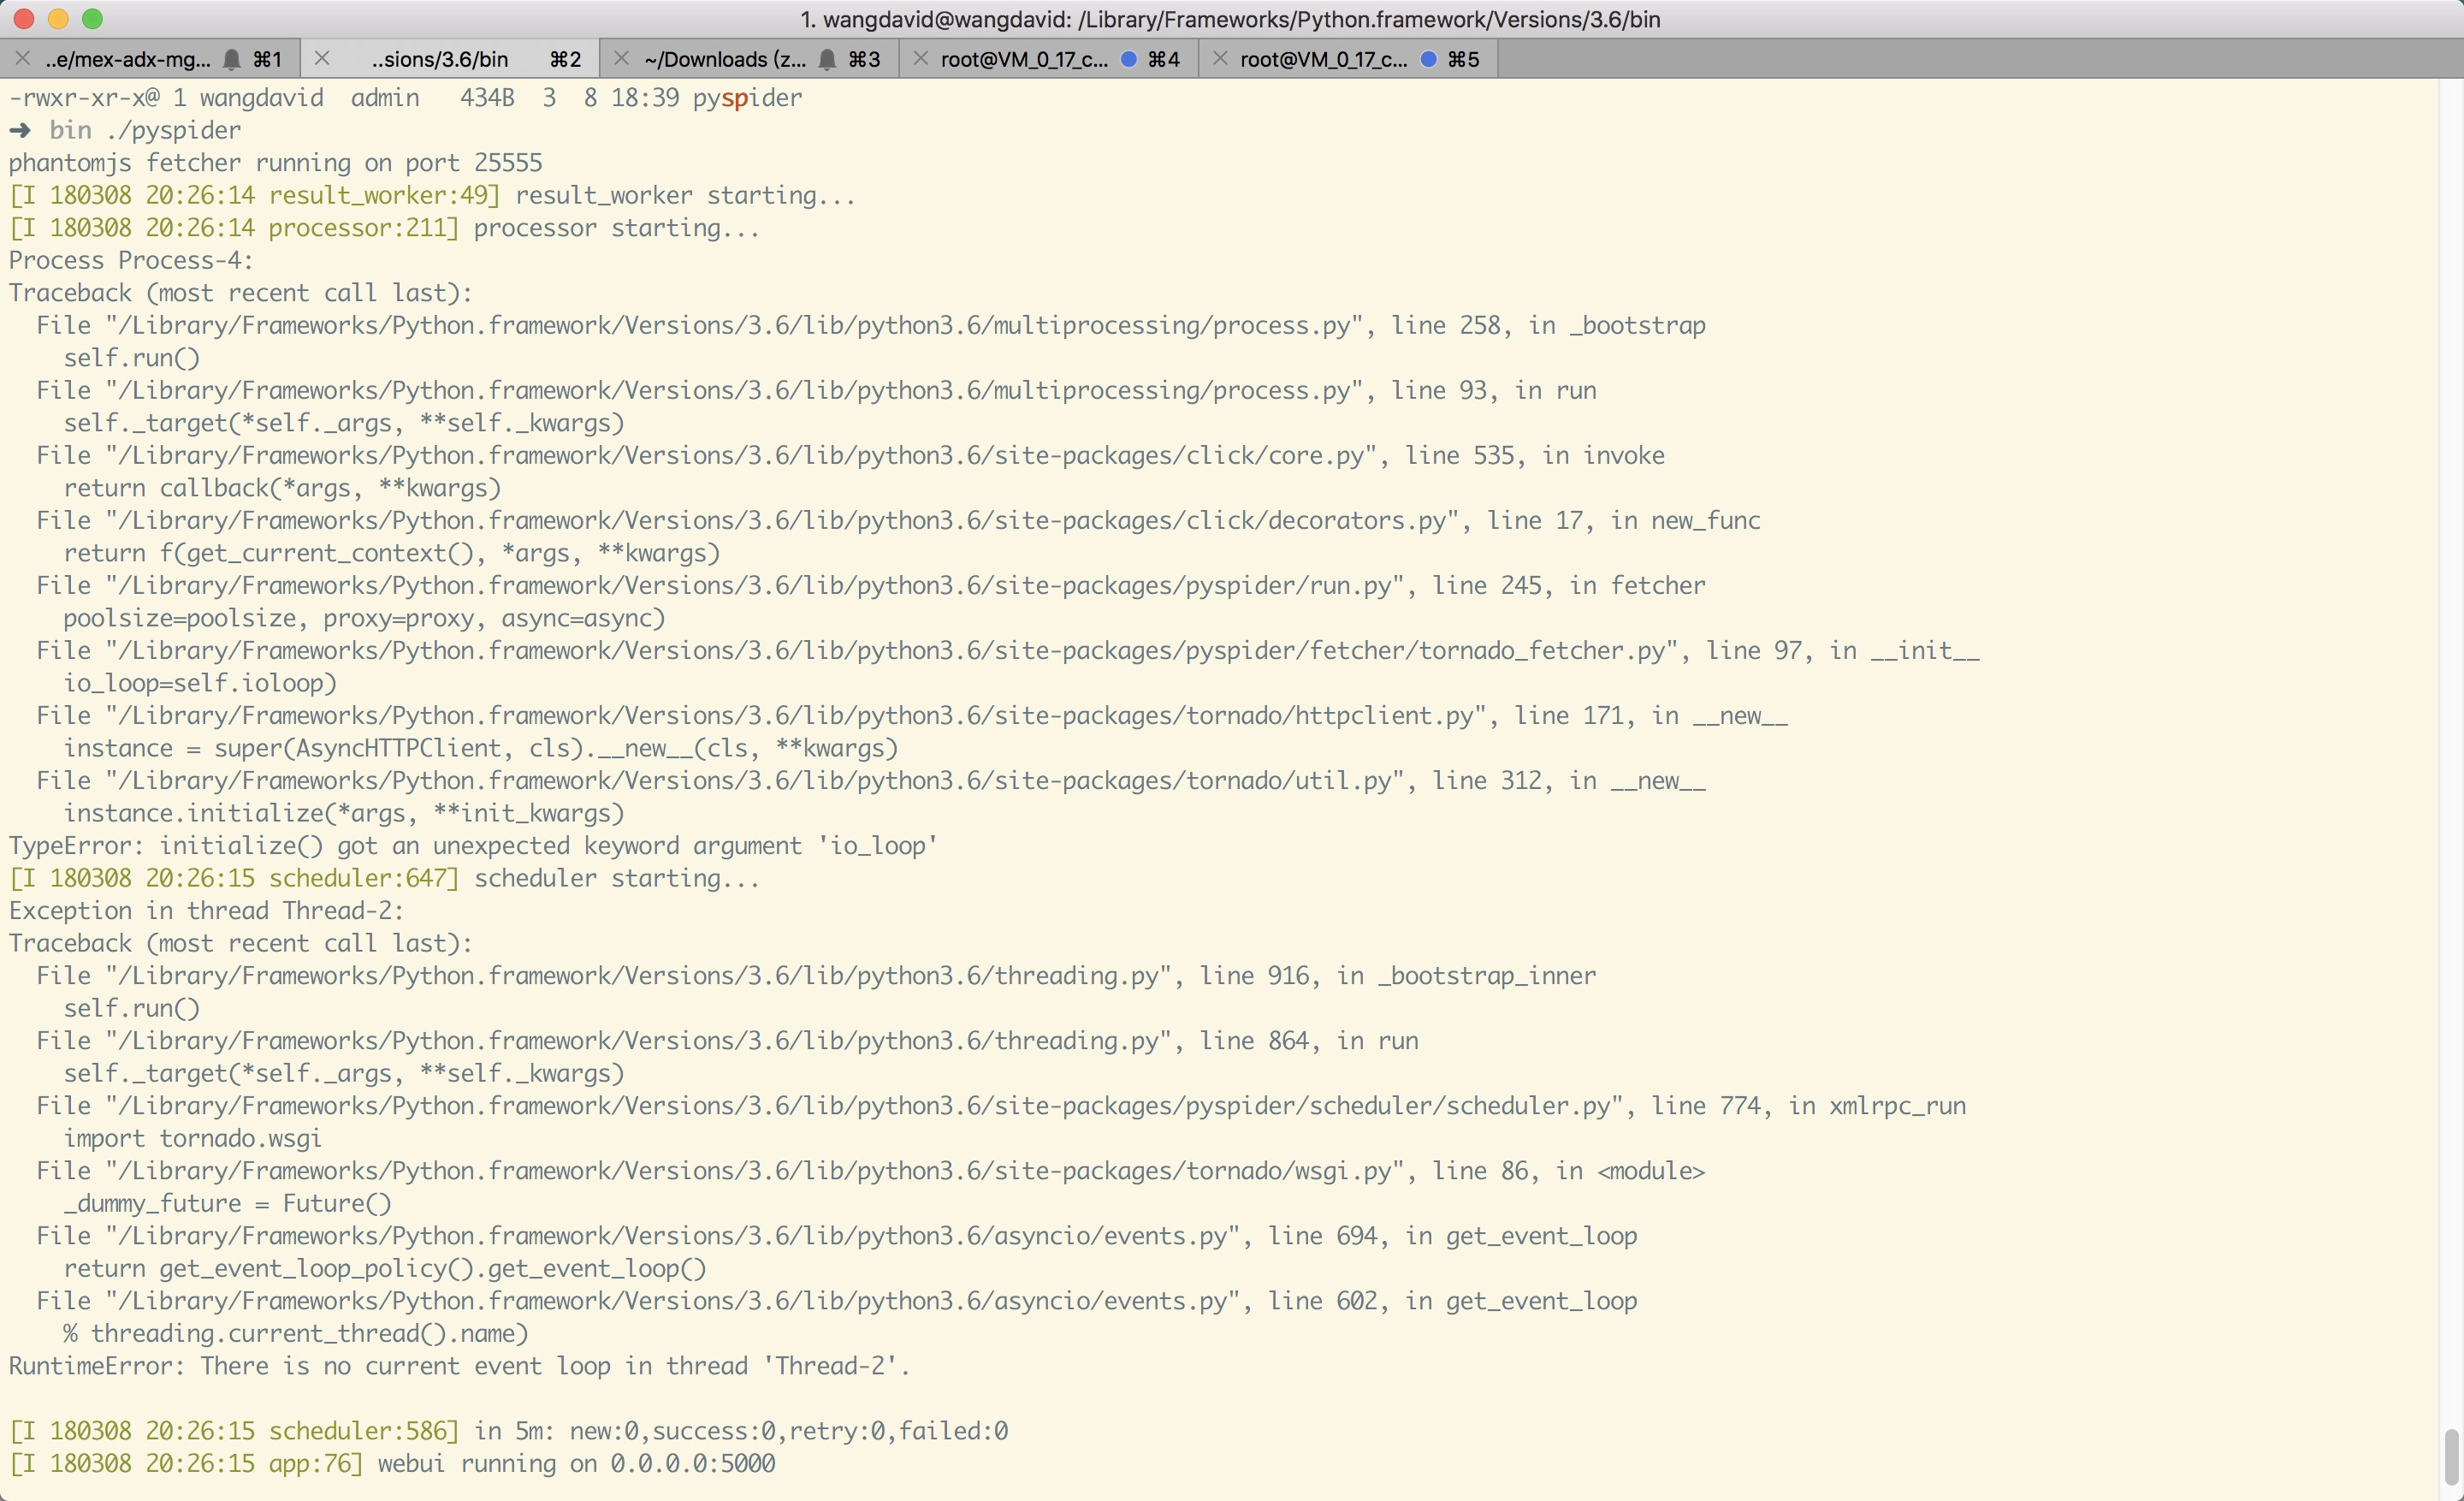 RuntimeError: There is no current event loop in thread